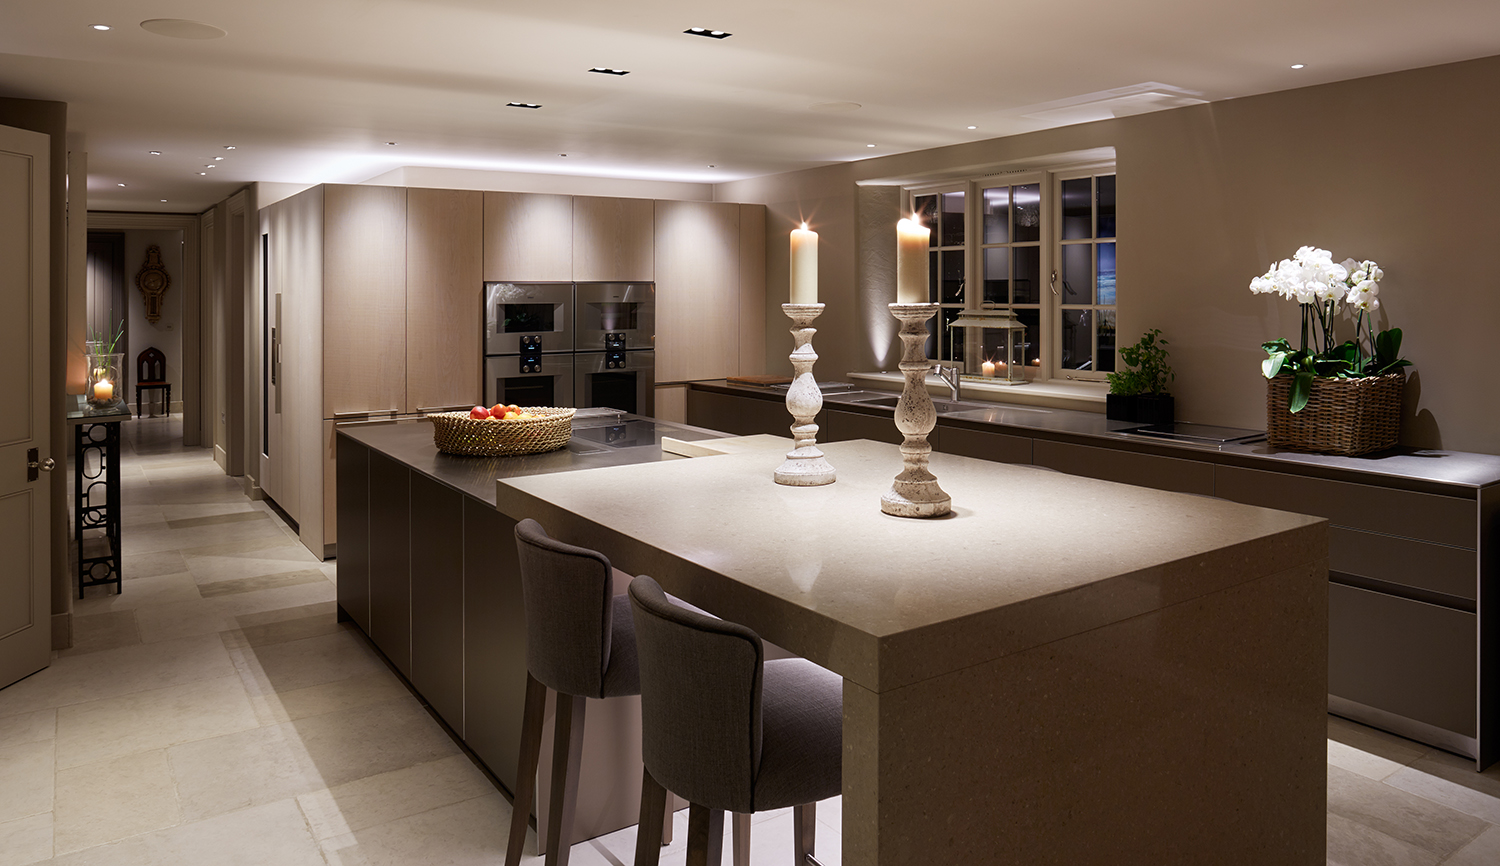 downlighting over kitchen island